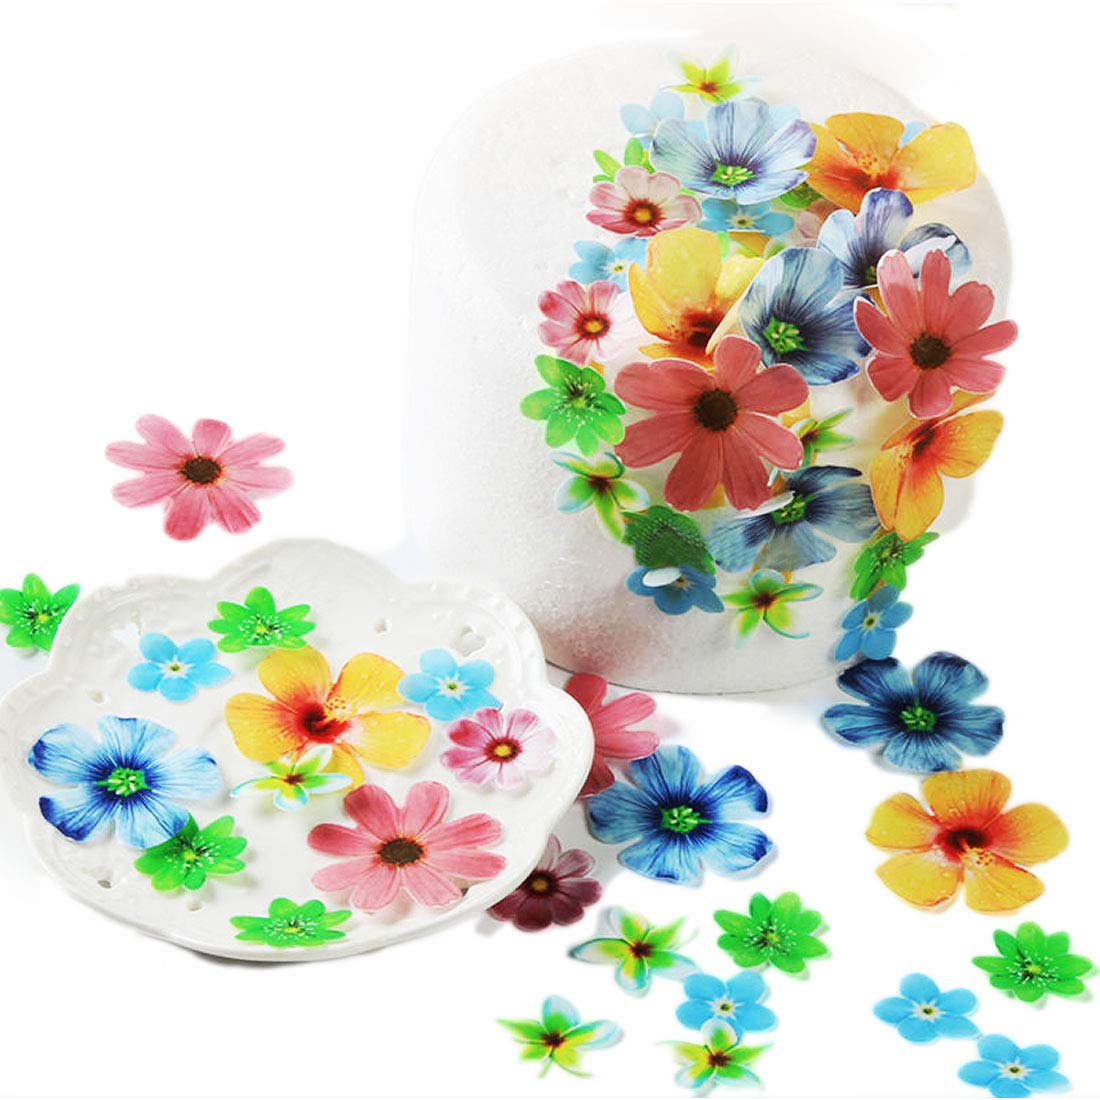 GEORLD Set of 72 Wafer Flowers Cupcake Toppers Wedding Cake Party Food Decoration Mixed Size & Colour